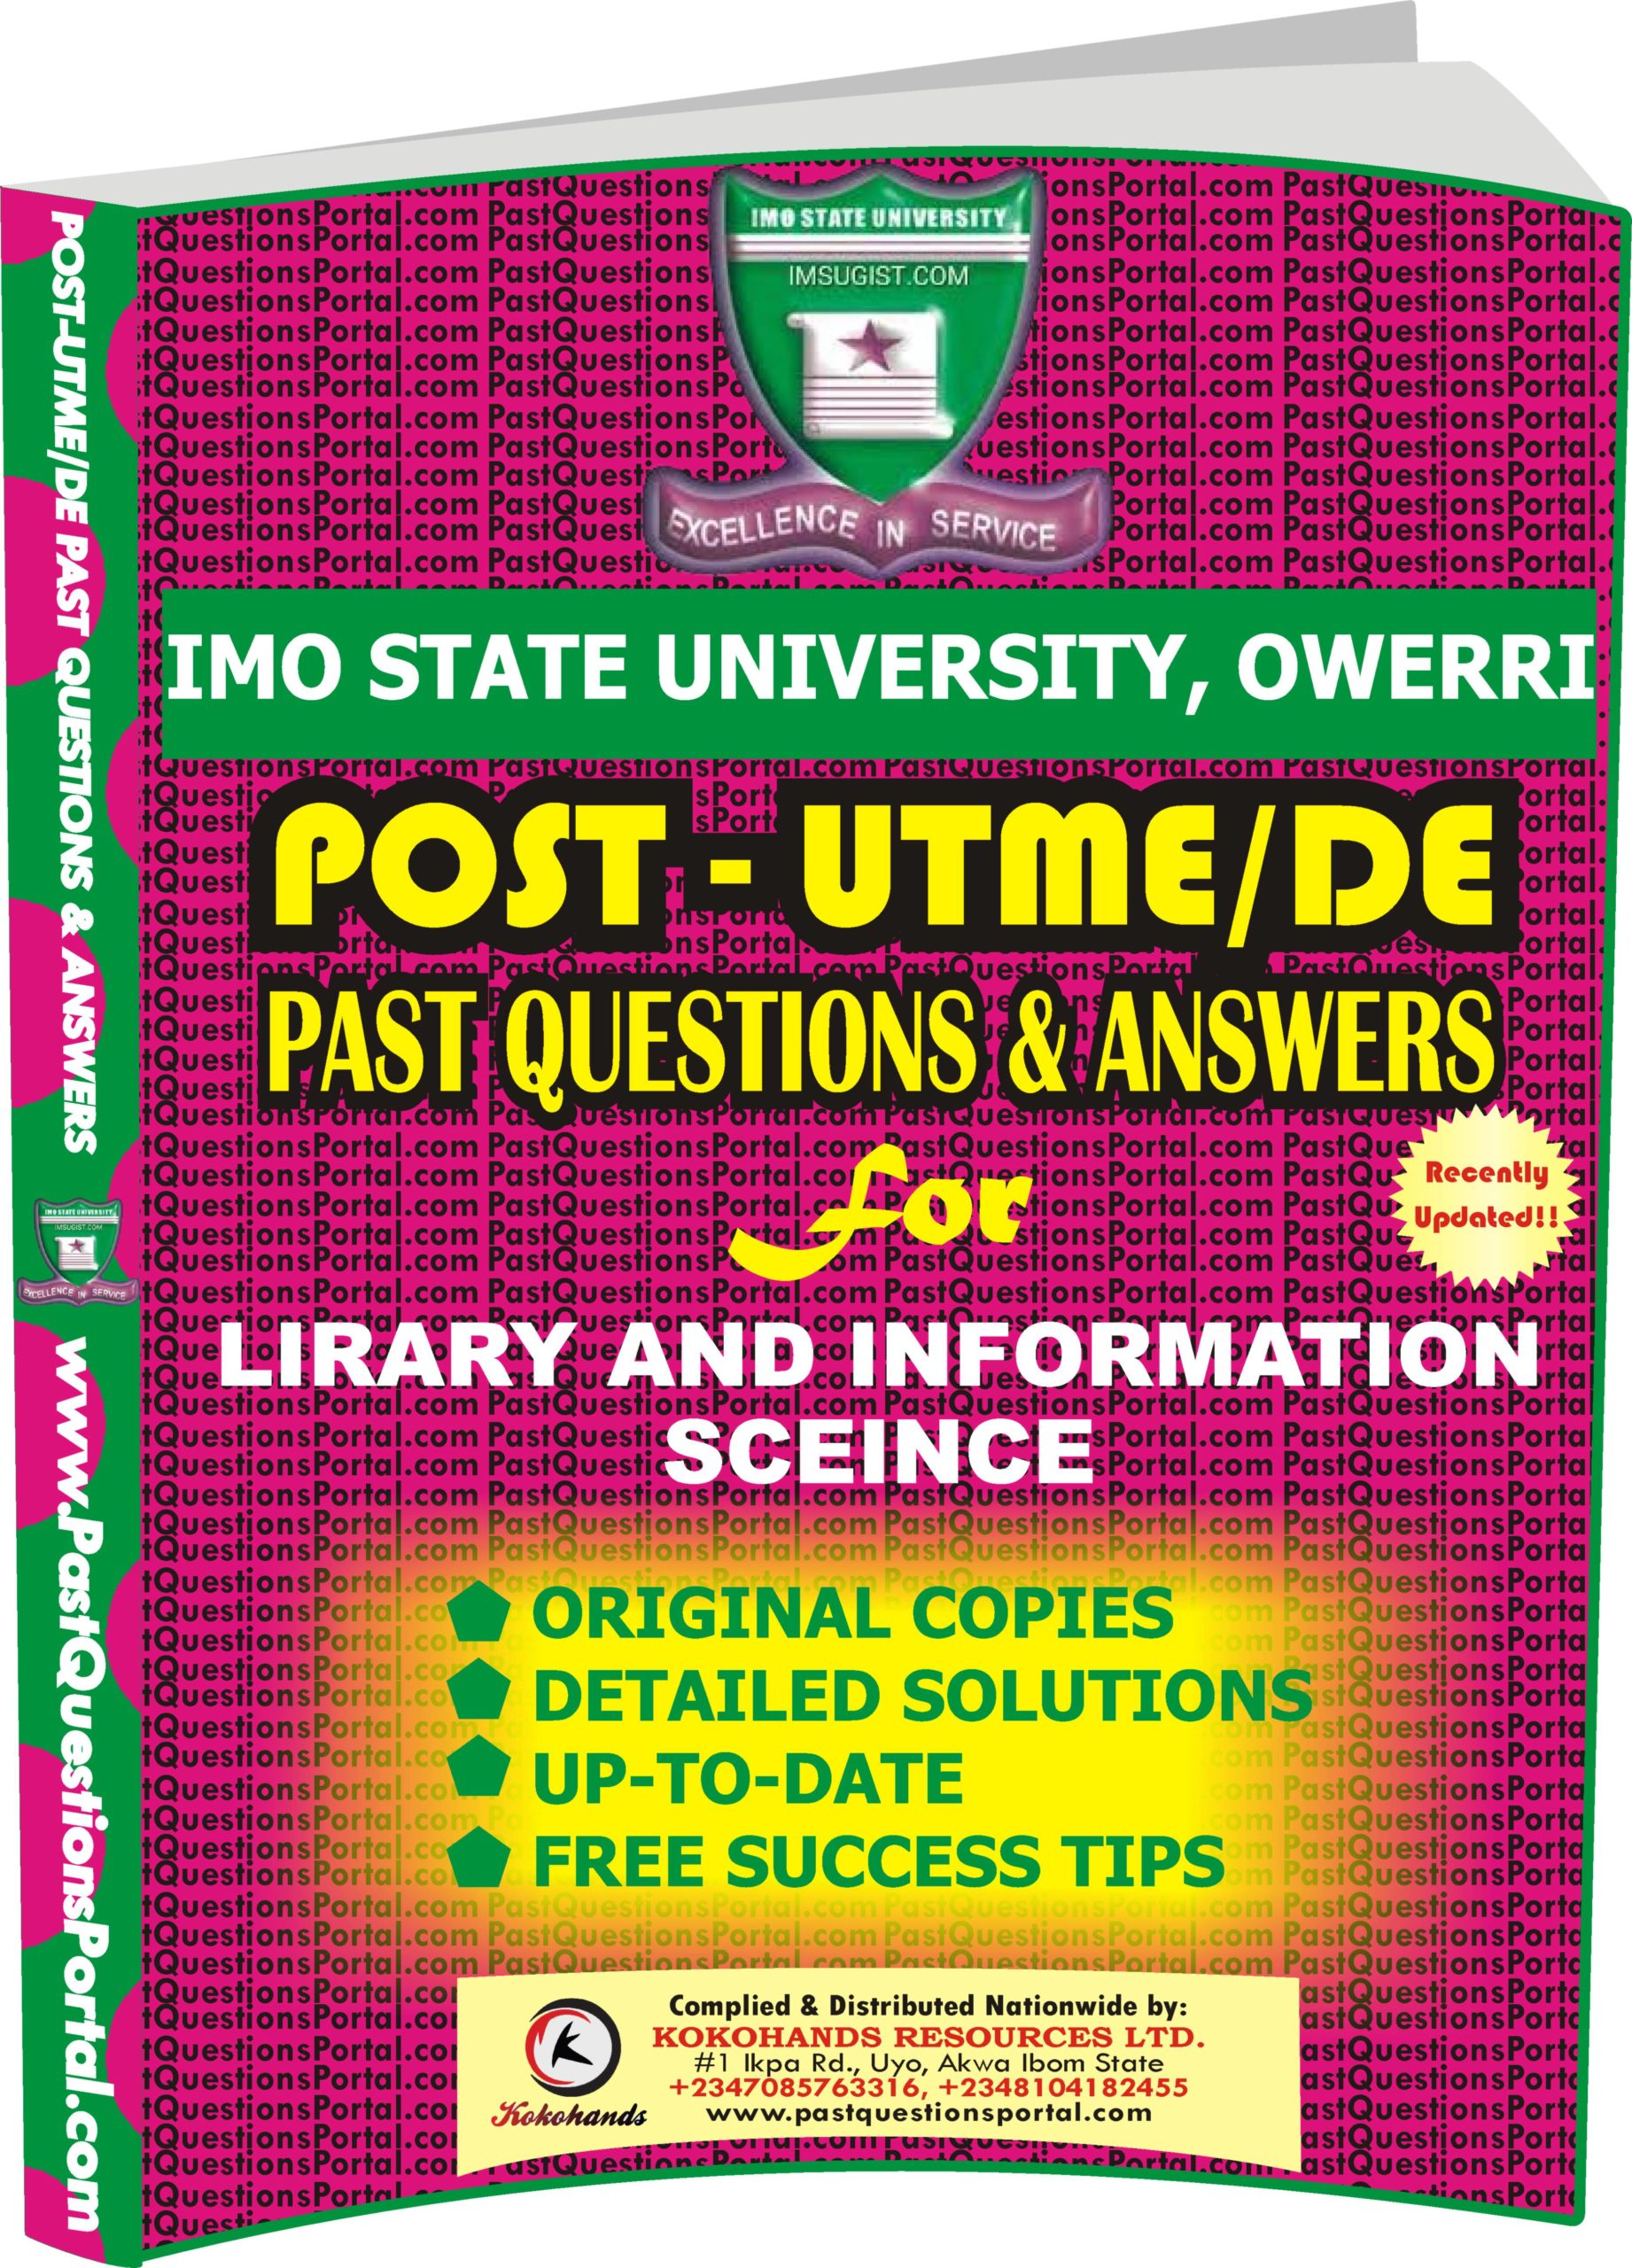 IMSU Post UTME Past Questions for Library and Information Science